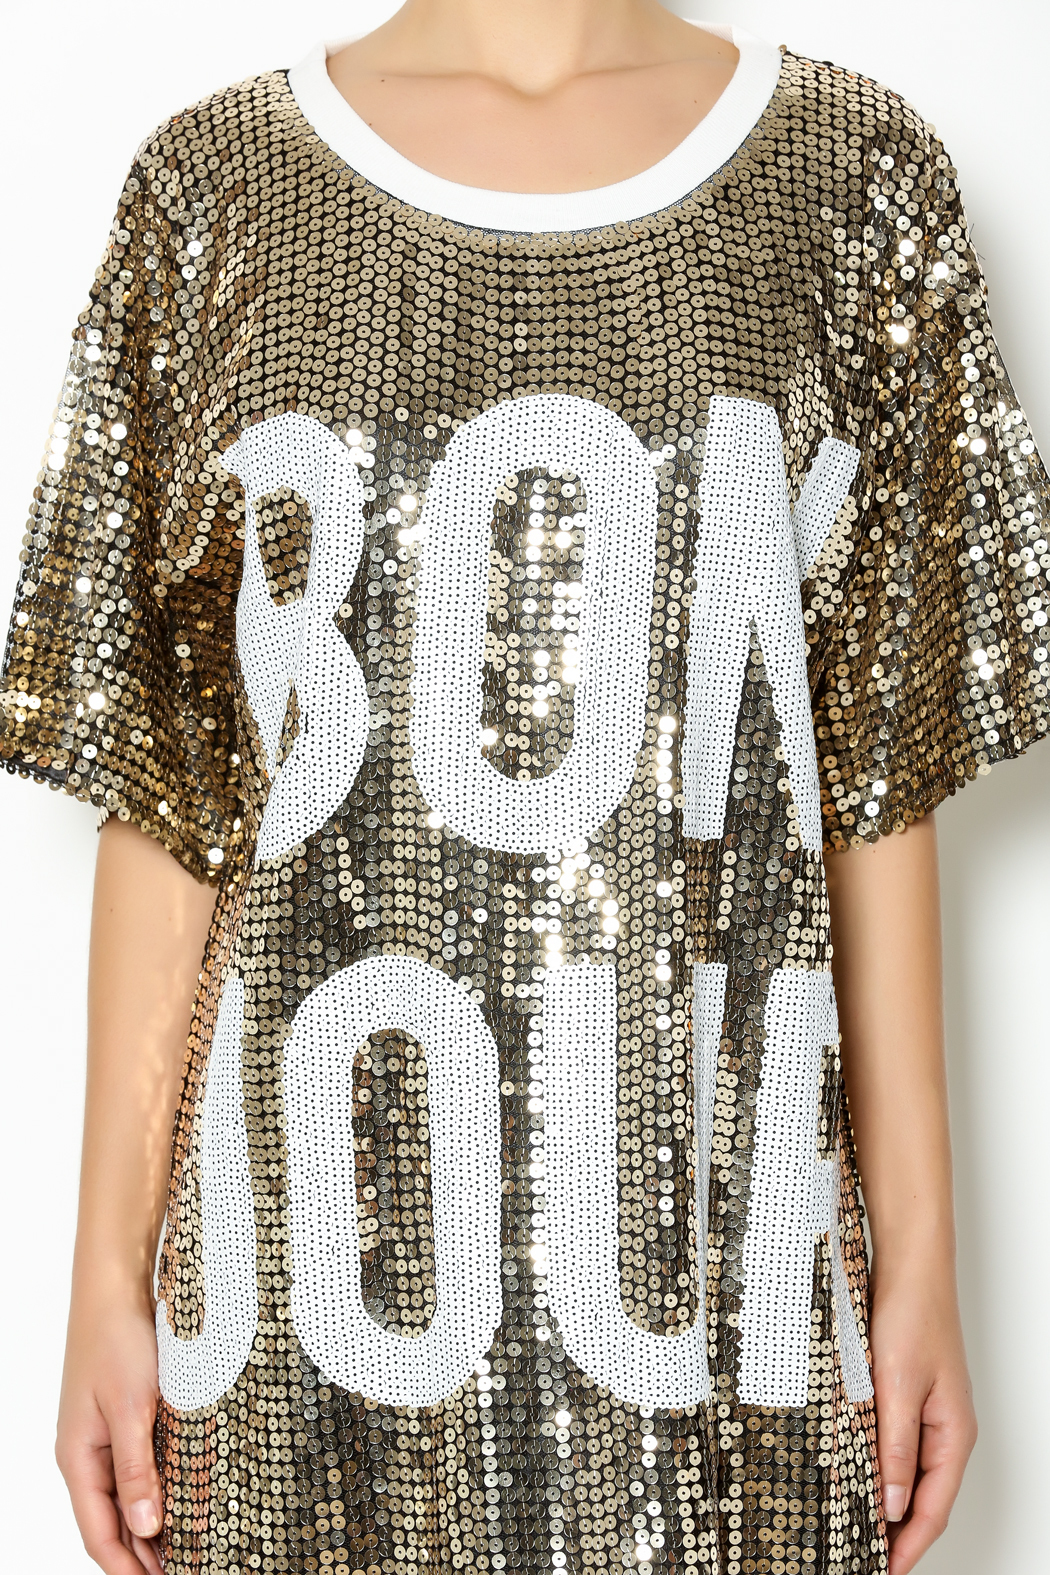 f5a2d083e50 Hot   Delicious Sequin Bonjour Dress from New York by Dor L Dor ...